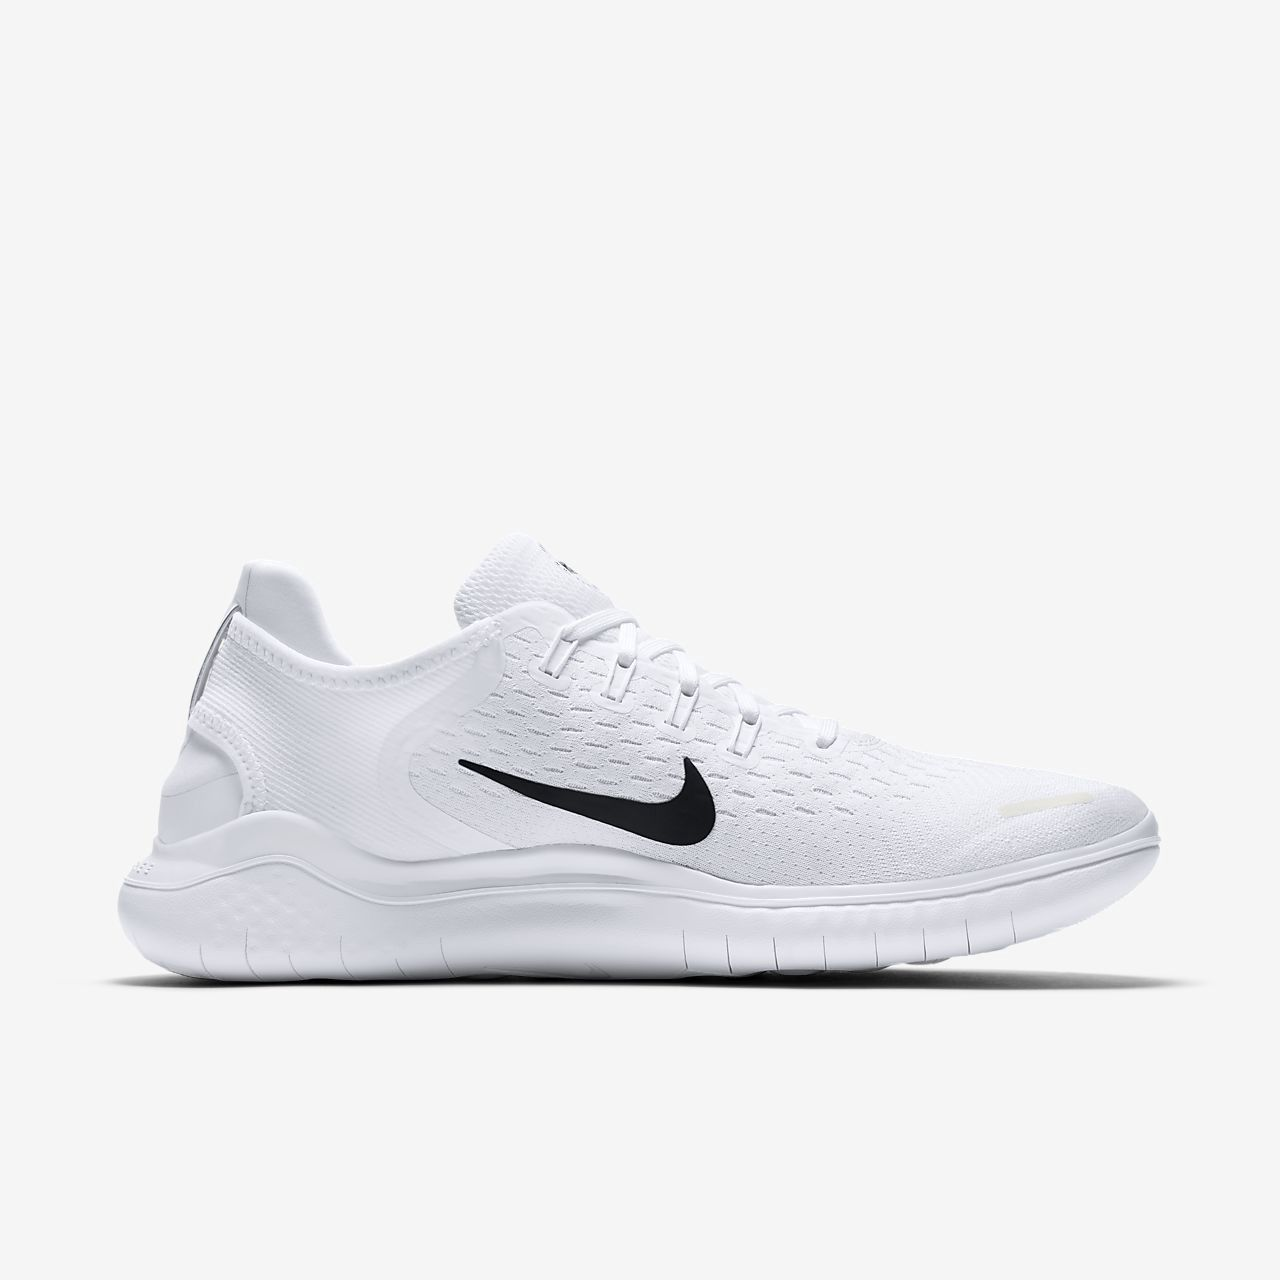 Nike Free Rn 2018 Men's Running Shoe 7 in 2020 | Running